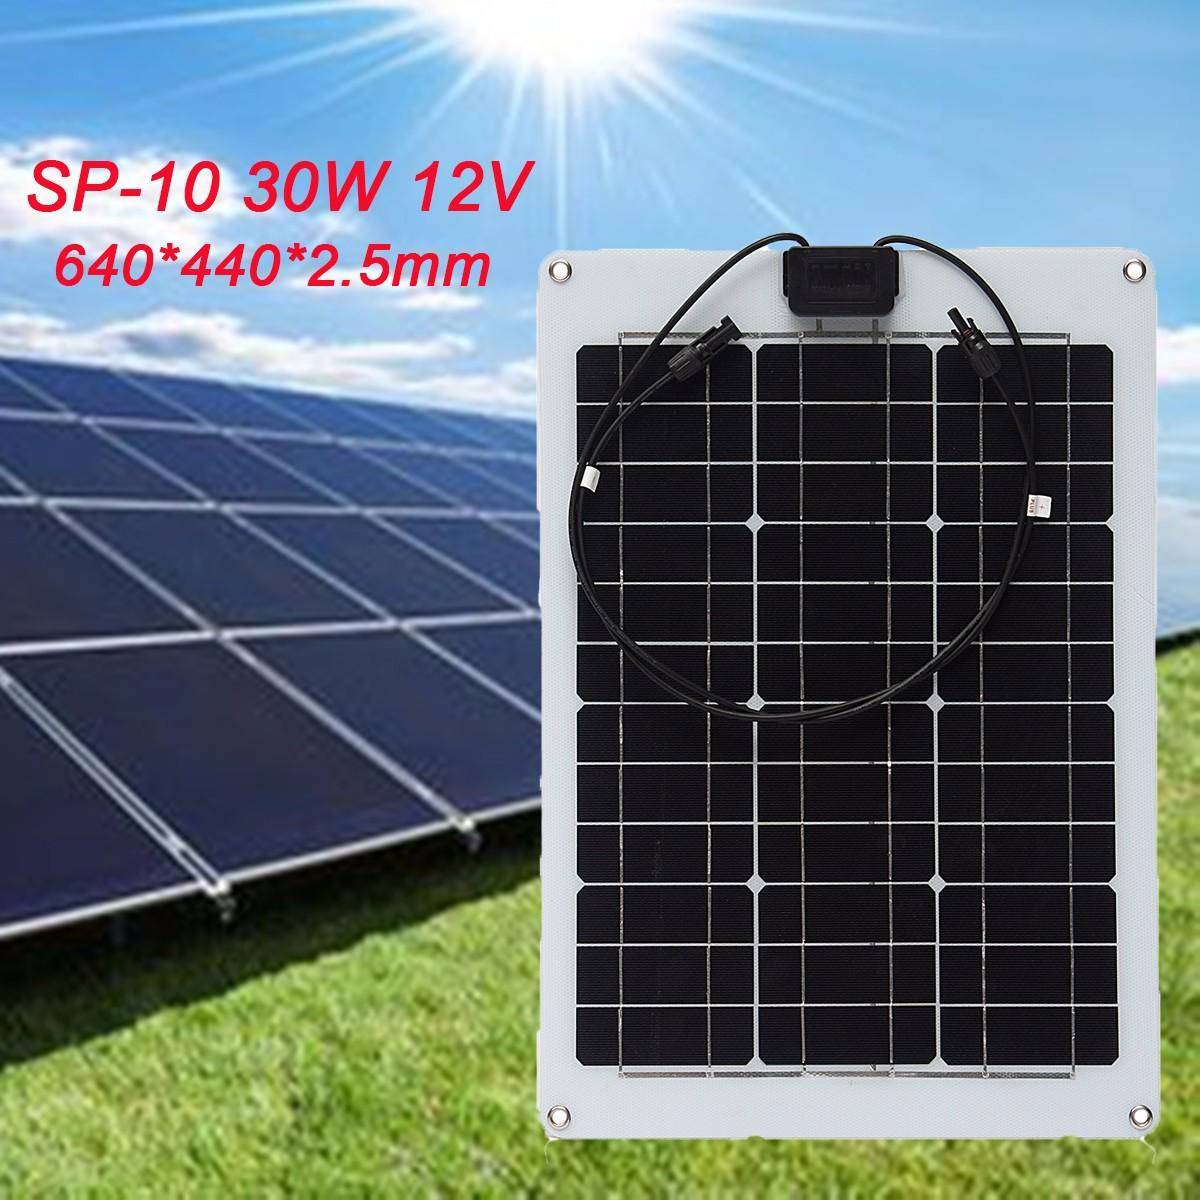 KINCO 30W 12V Sunpower Efficient single crystal flexible solar panels For Car Battery Phone Charger RT Boat High Conversion Rate alex lidow gan transistors for efficient power conversion